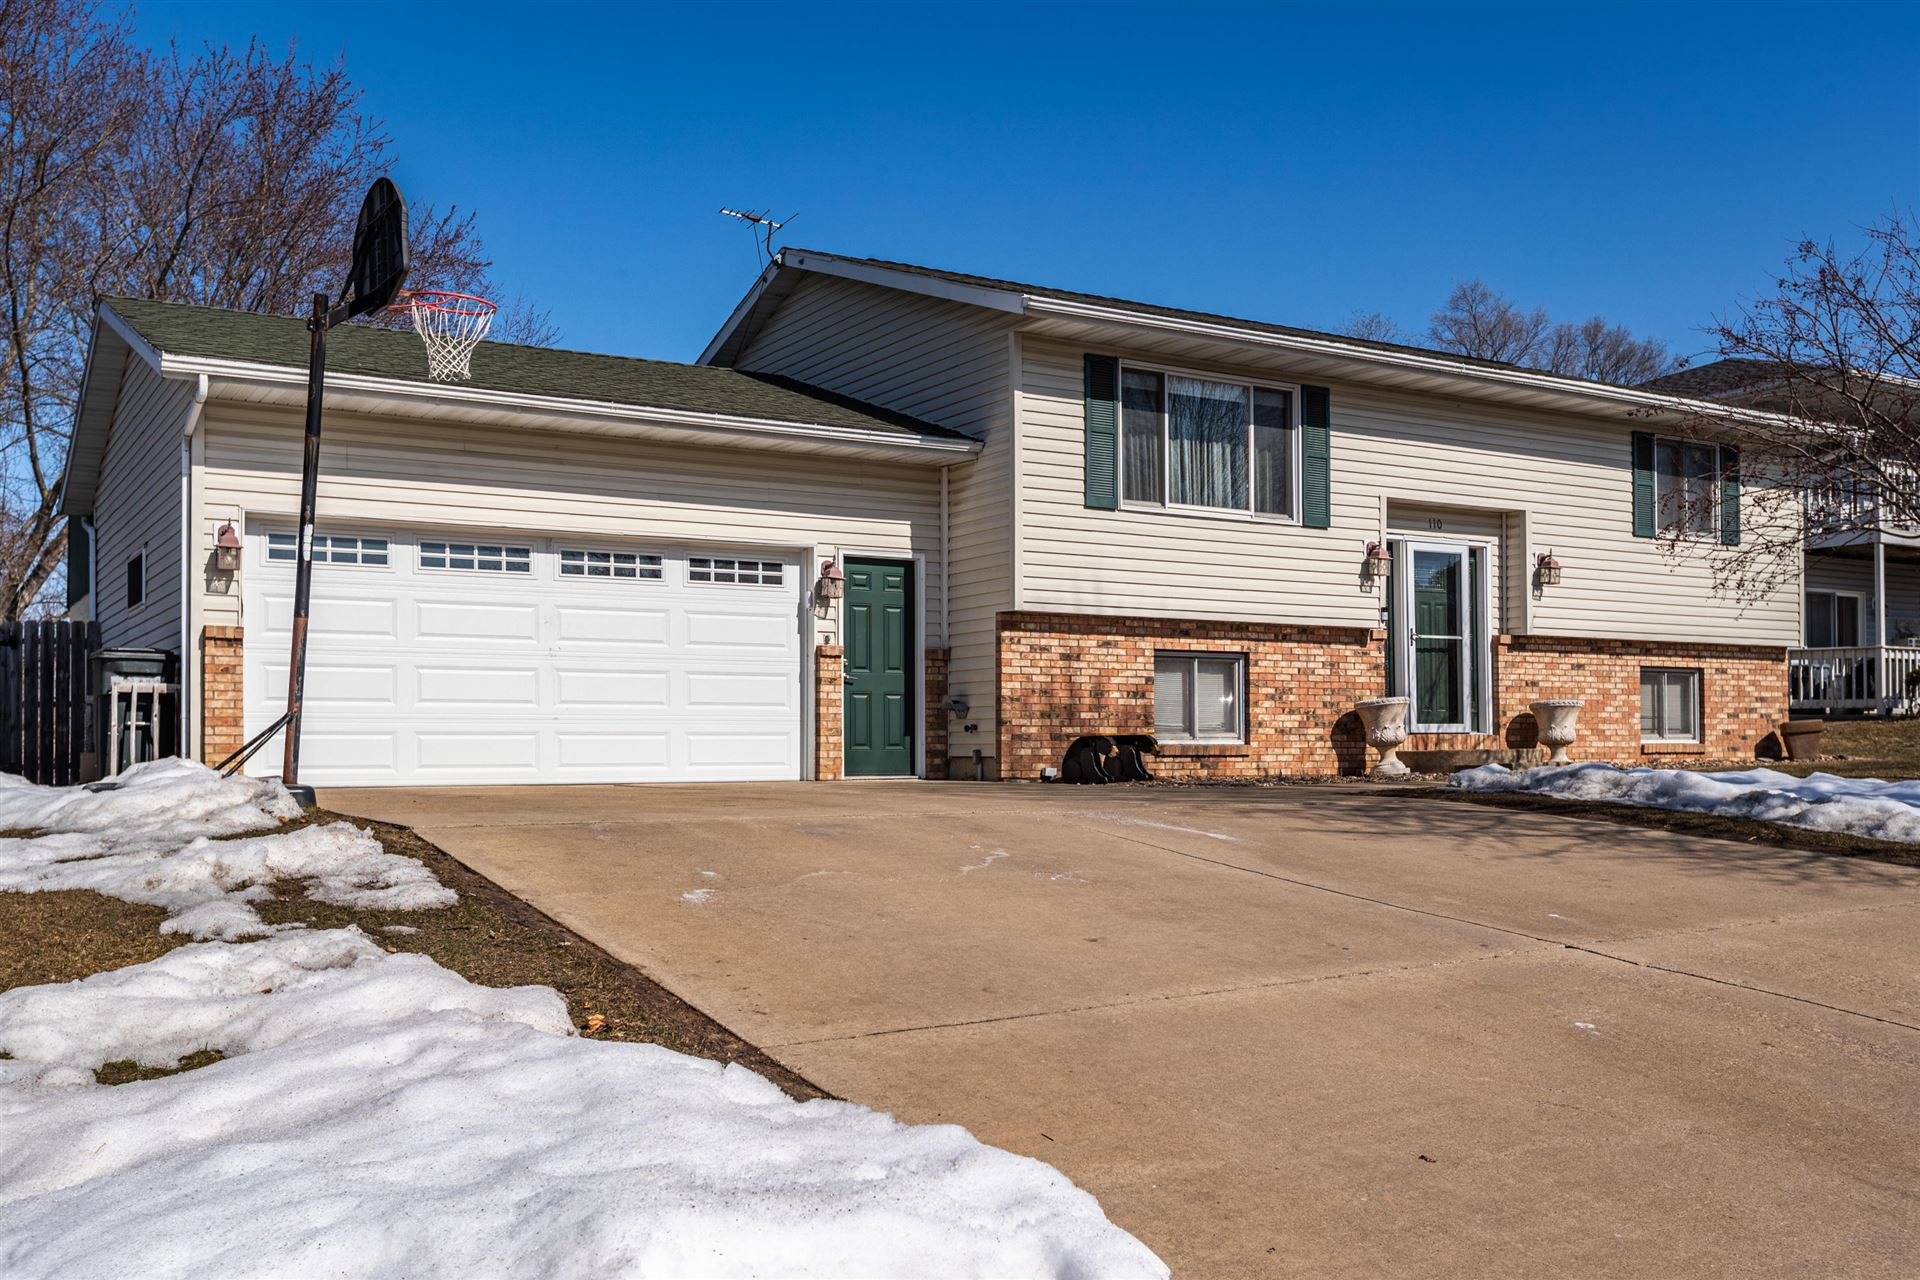 110 Summer Ln, Sparta, WI 54656 - MLS#: 1729248